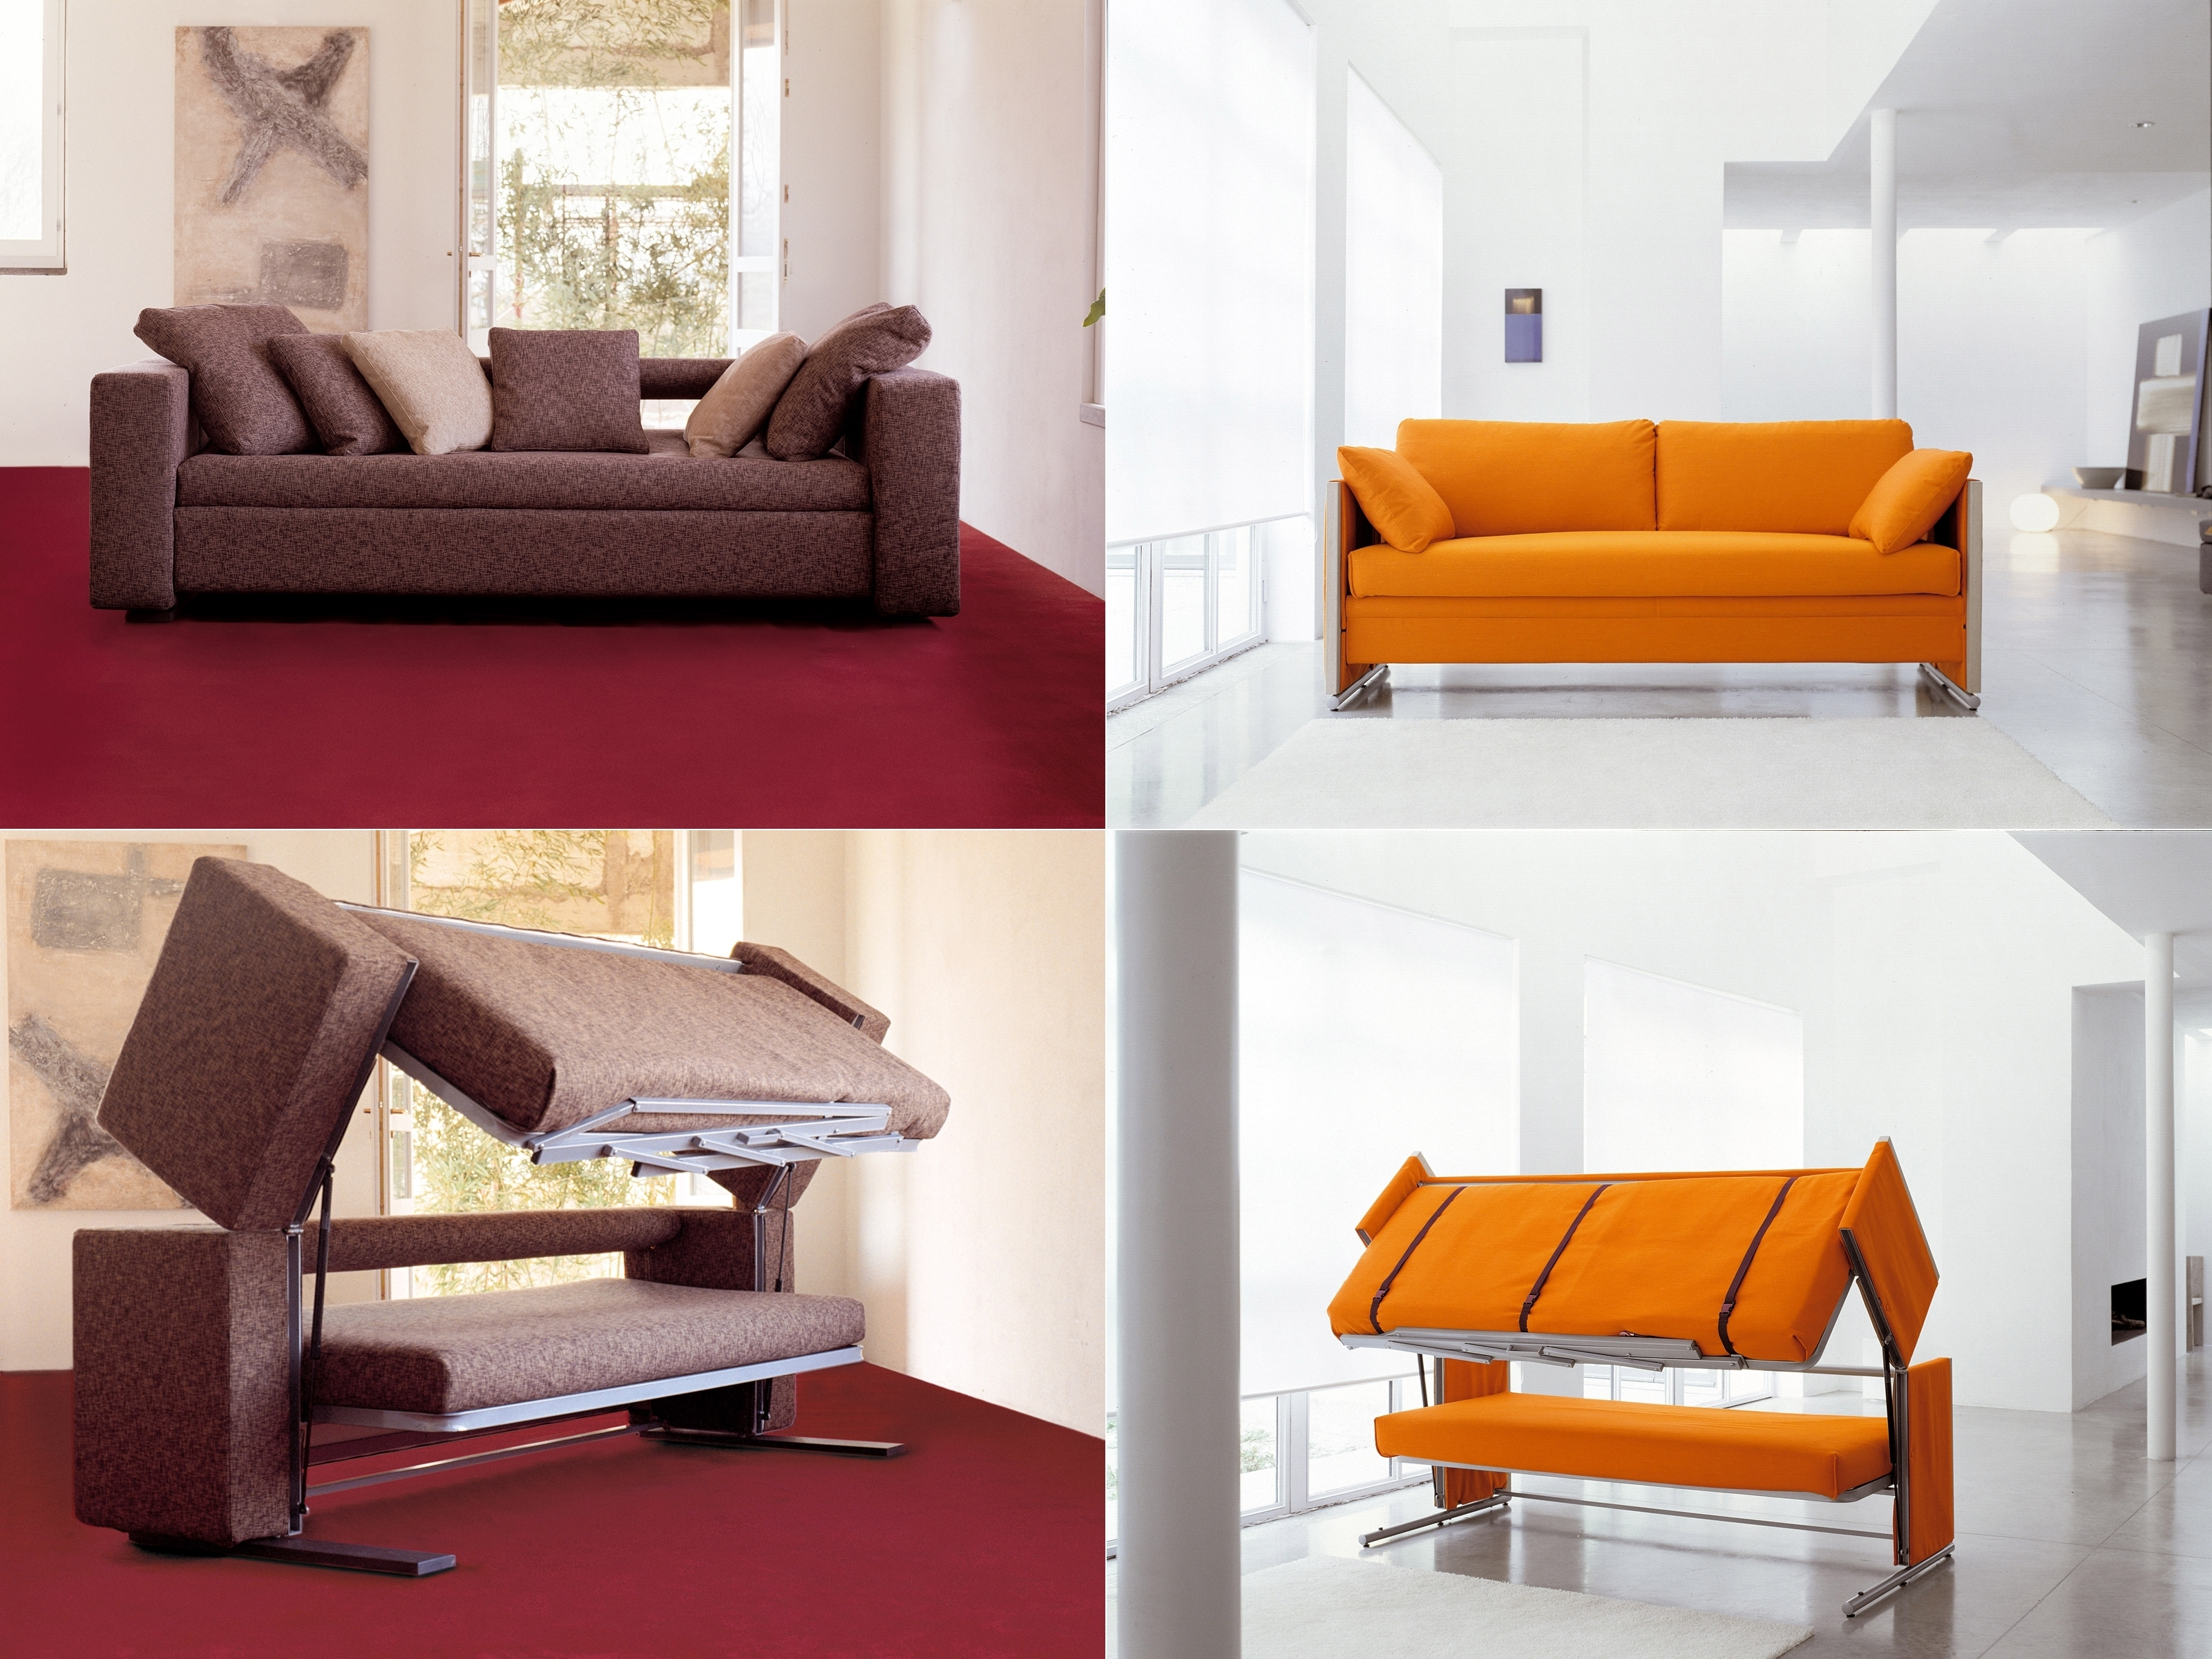 Newest Innovative Multifunctional Sofadesigner Giulio Manzoni Throughout Sofa Bunk Beds (View 14 of 15)